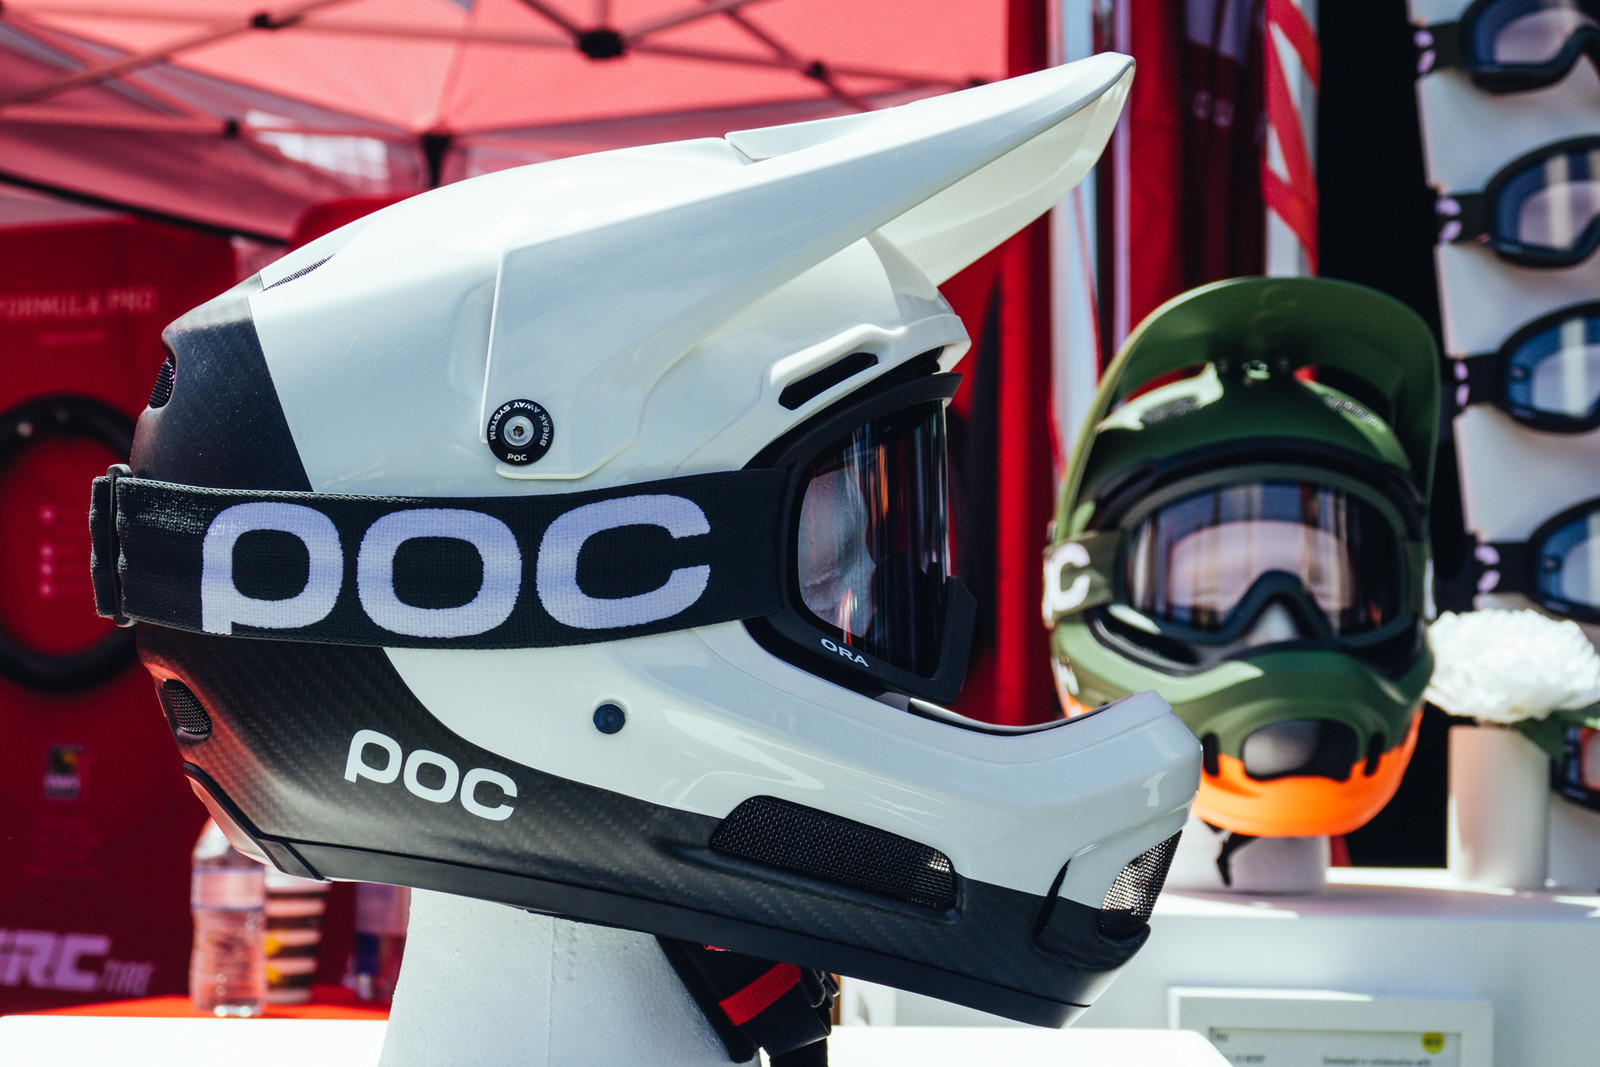 POC's Incredibly Clean Coron Air Carbon SPIN Helmet Packs Interesting Tech - Sea Otter Classic